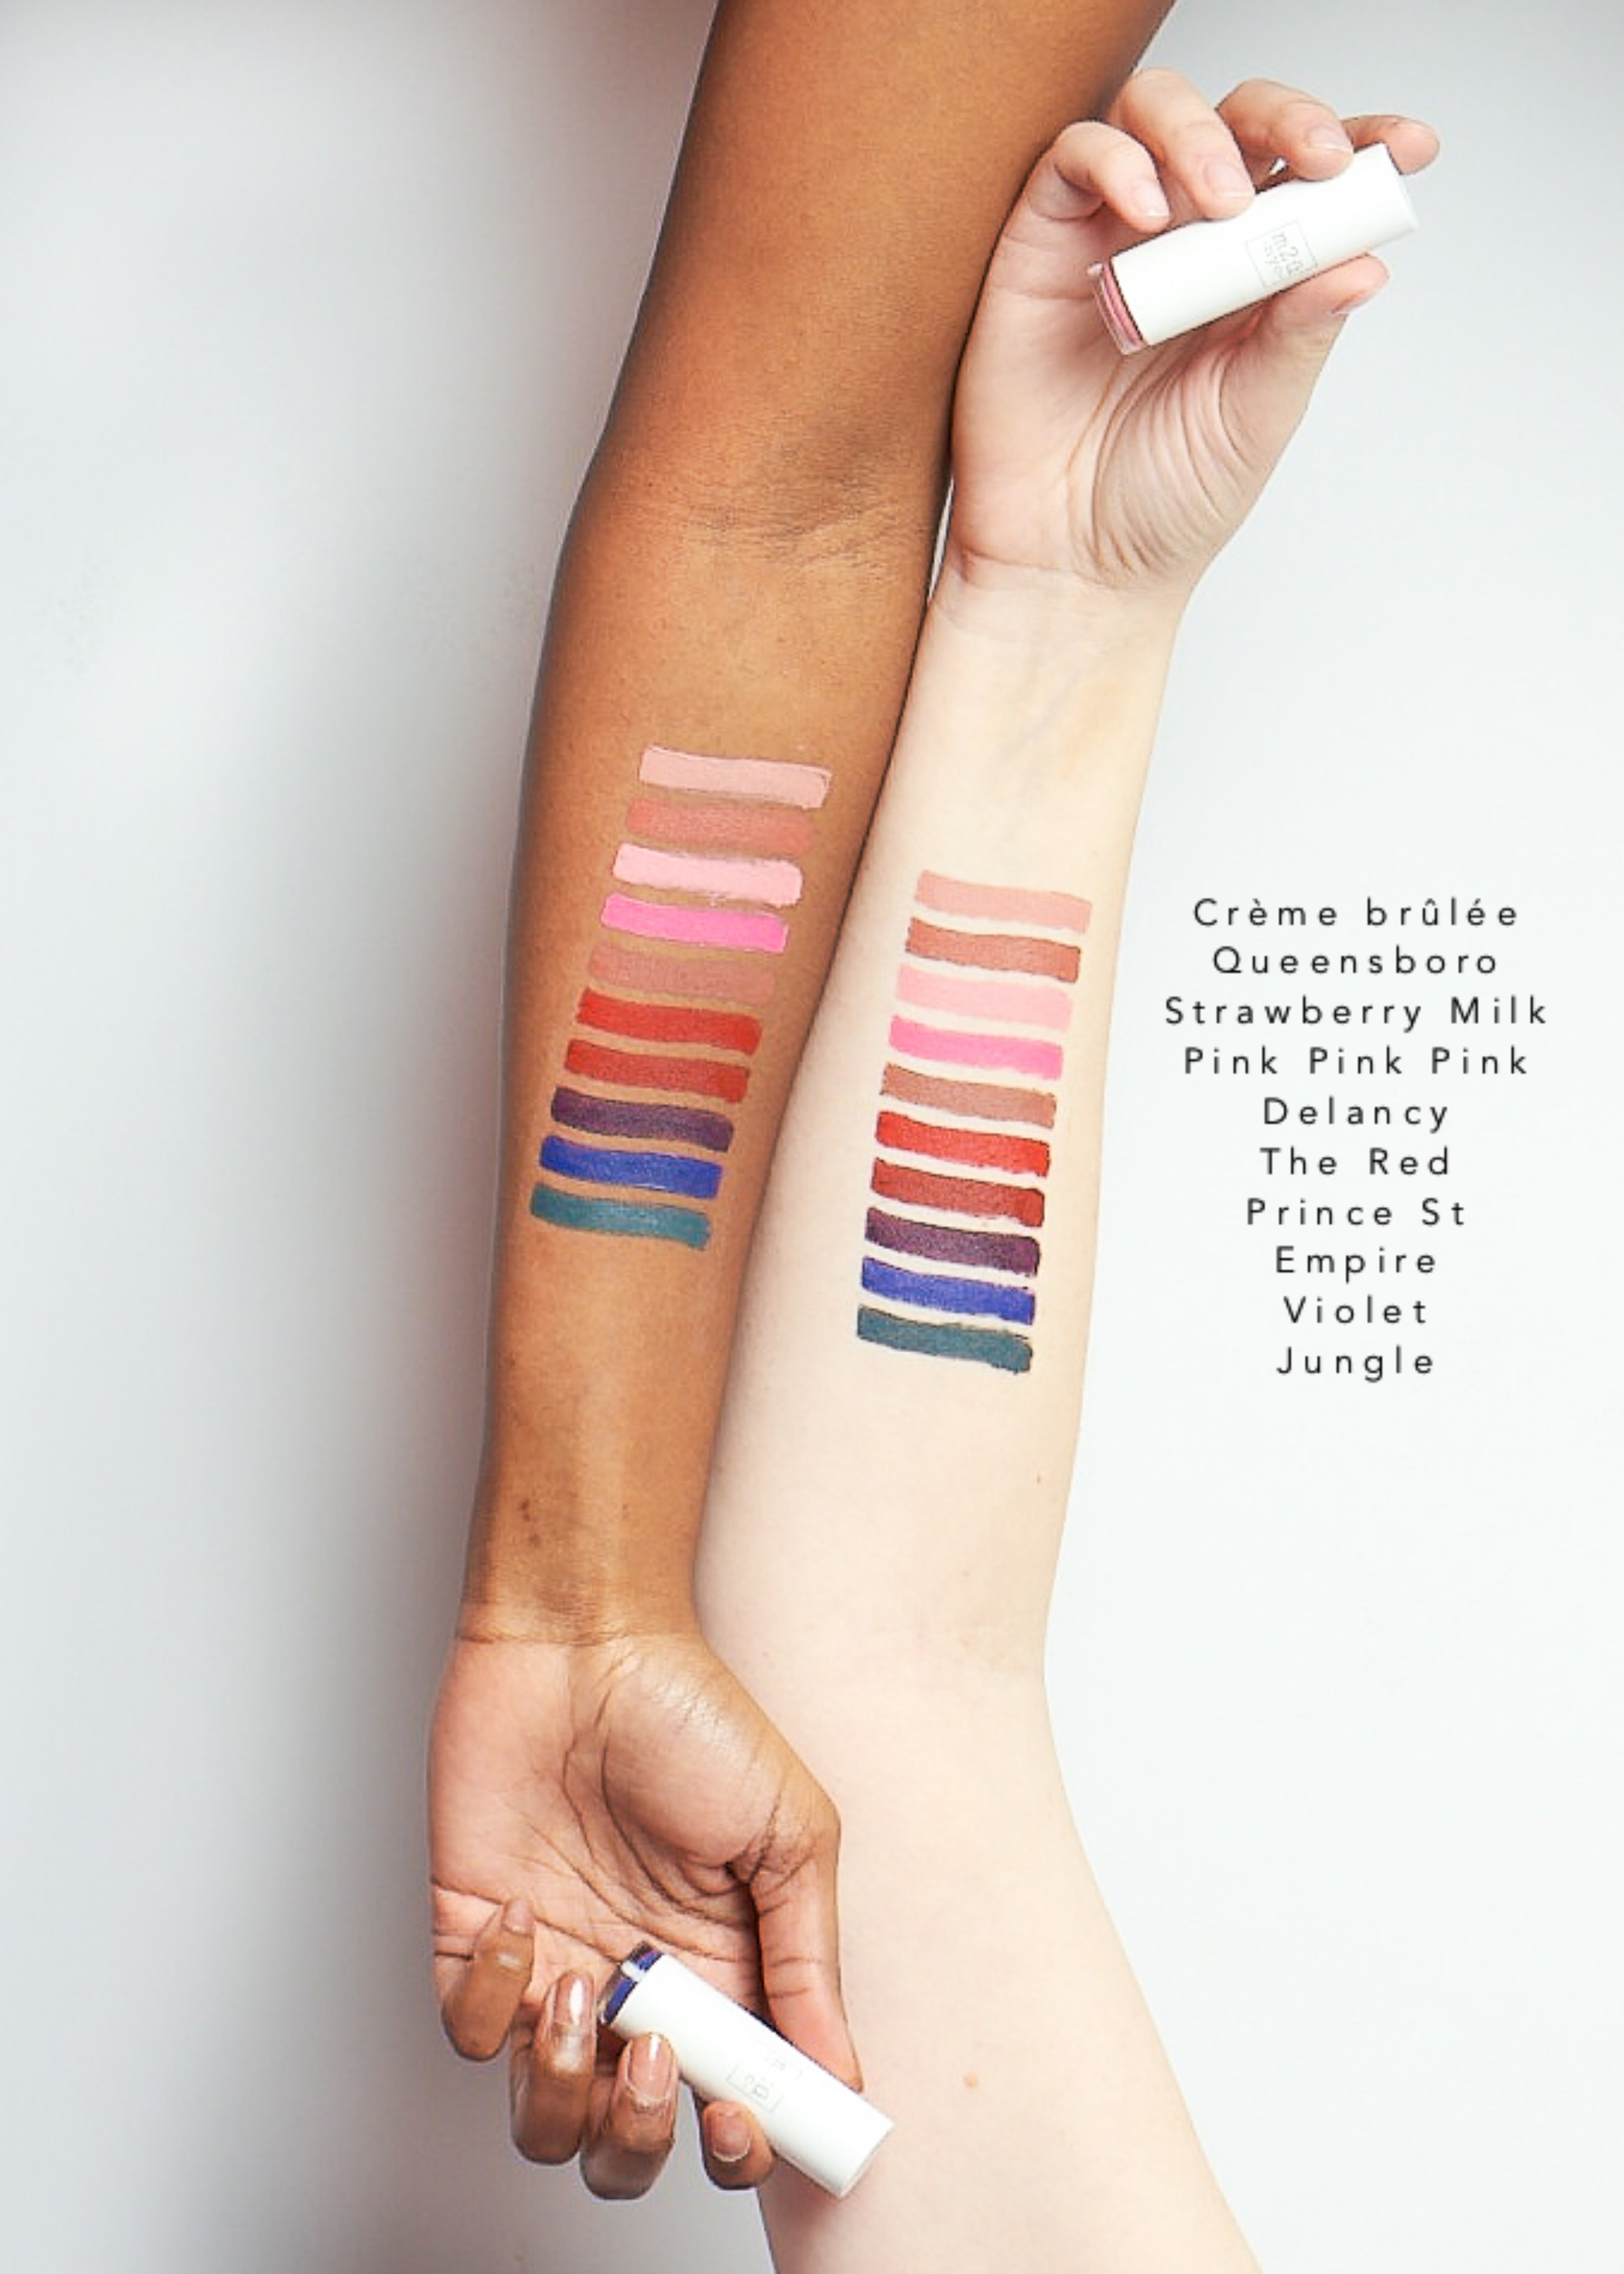 color swatches of matte lipsticks in ten shades from light to dark